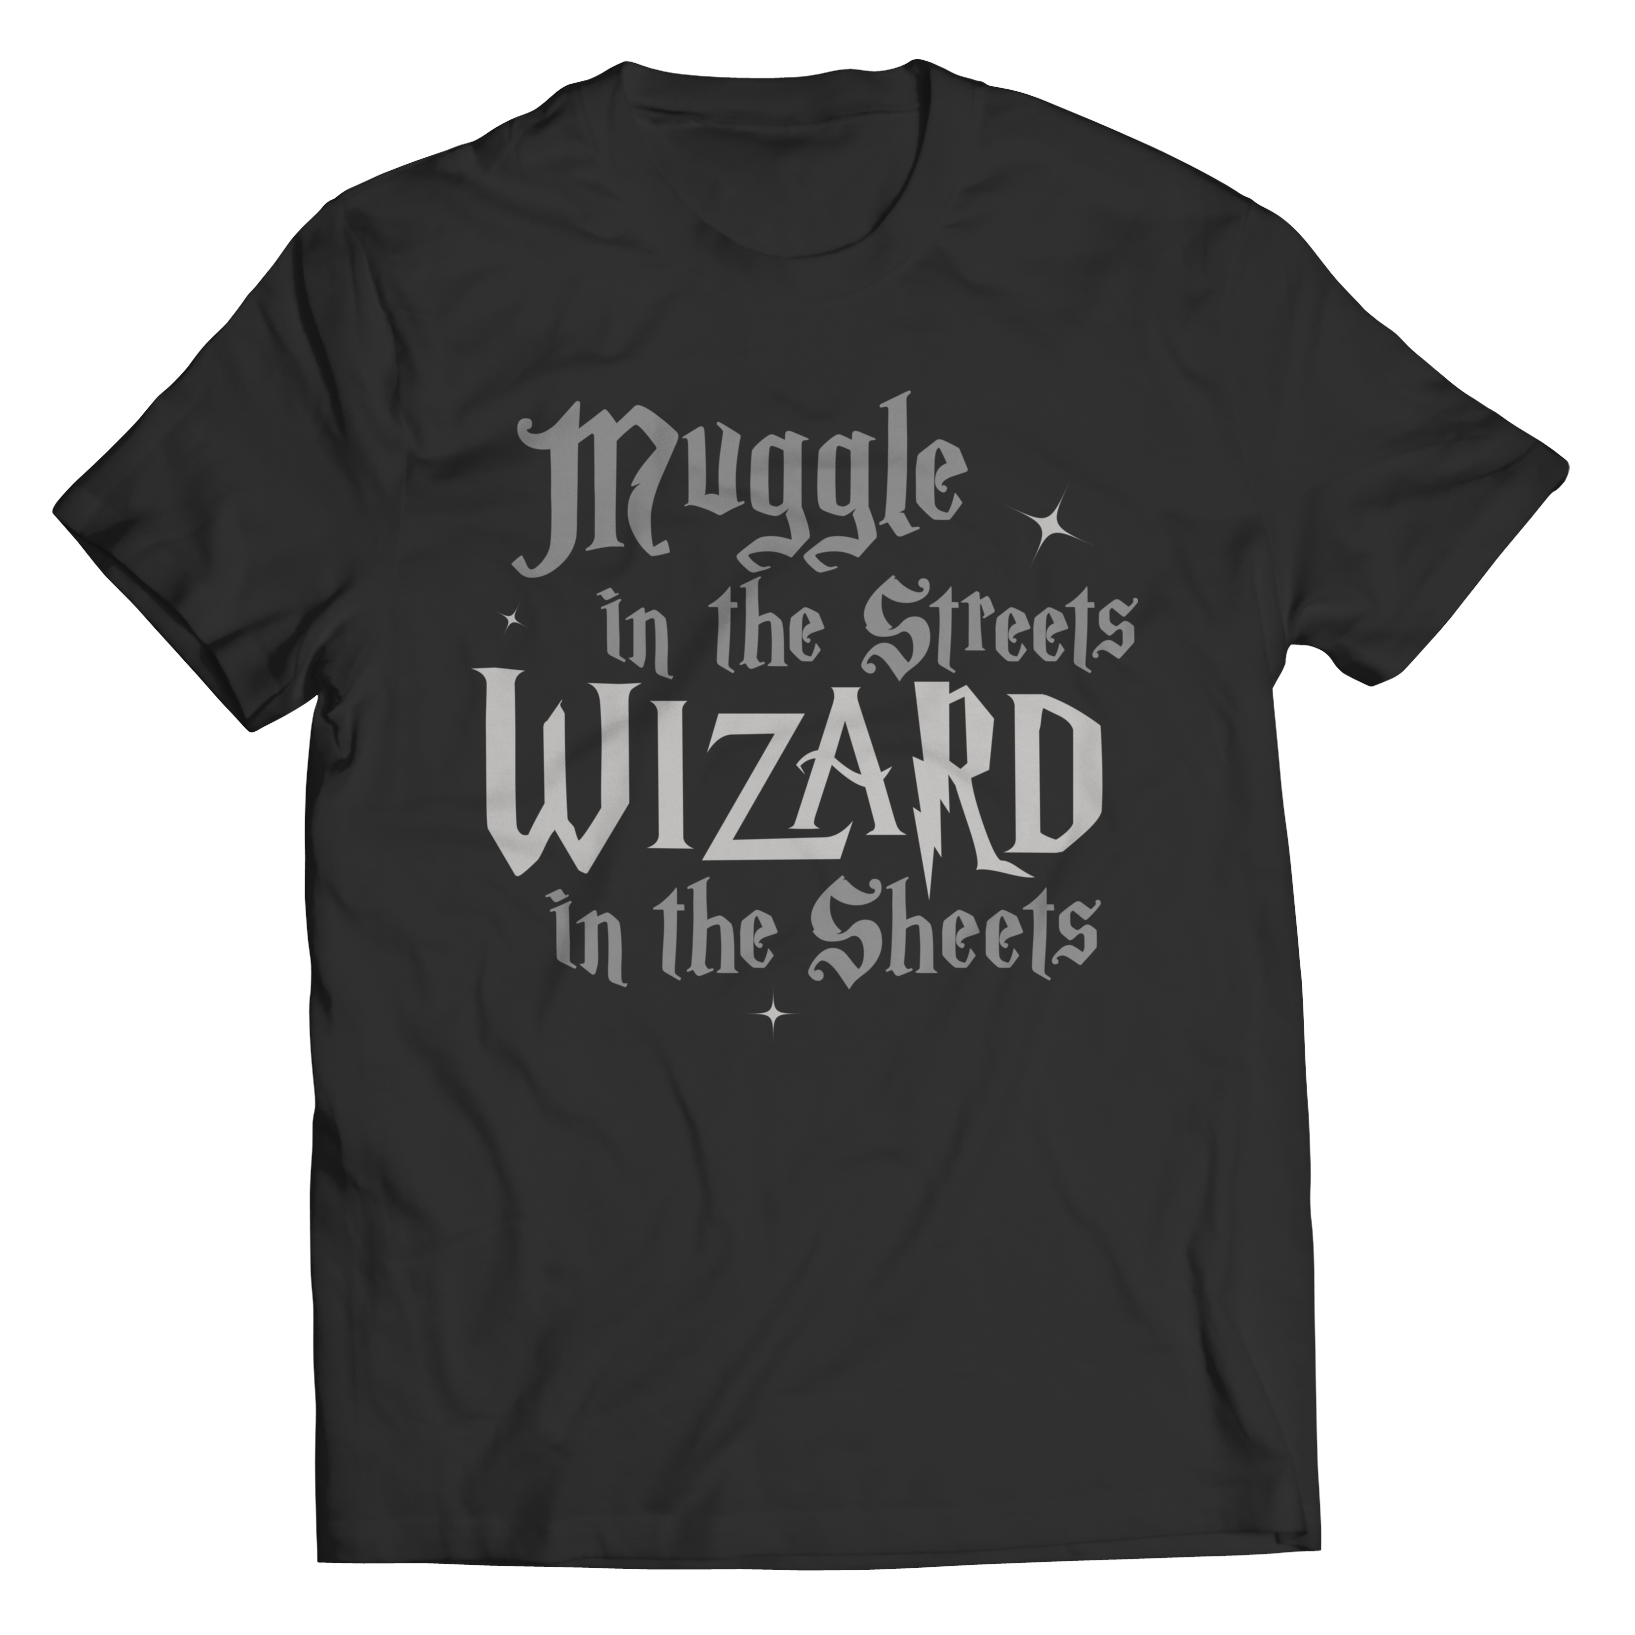 This Harry Potter inspired muggle in the Streets Wizard in the sheets best gift shirt is truly a fan favorite and every hogwarts lover from Gryffindor to slytherin must get this awesome black unisex t shirt super sale.